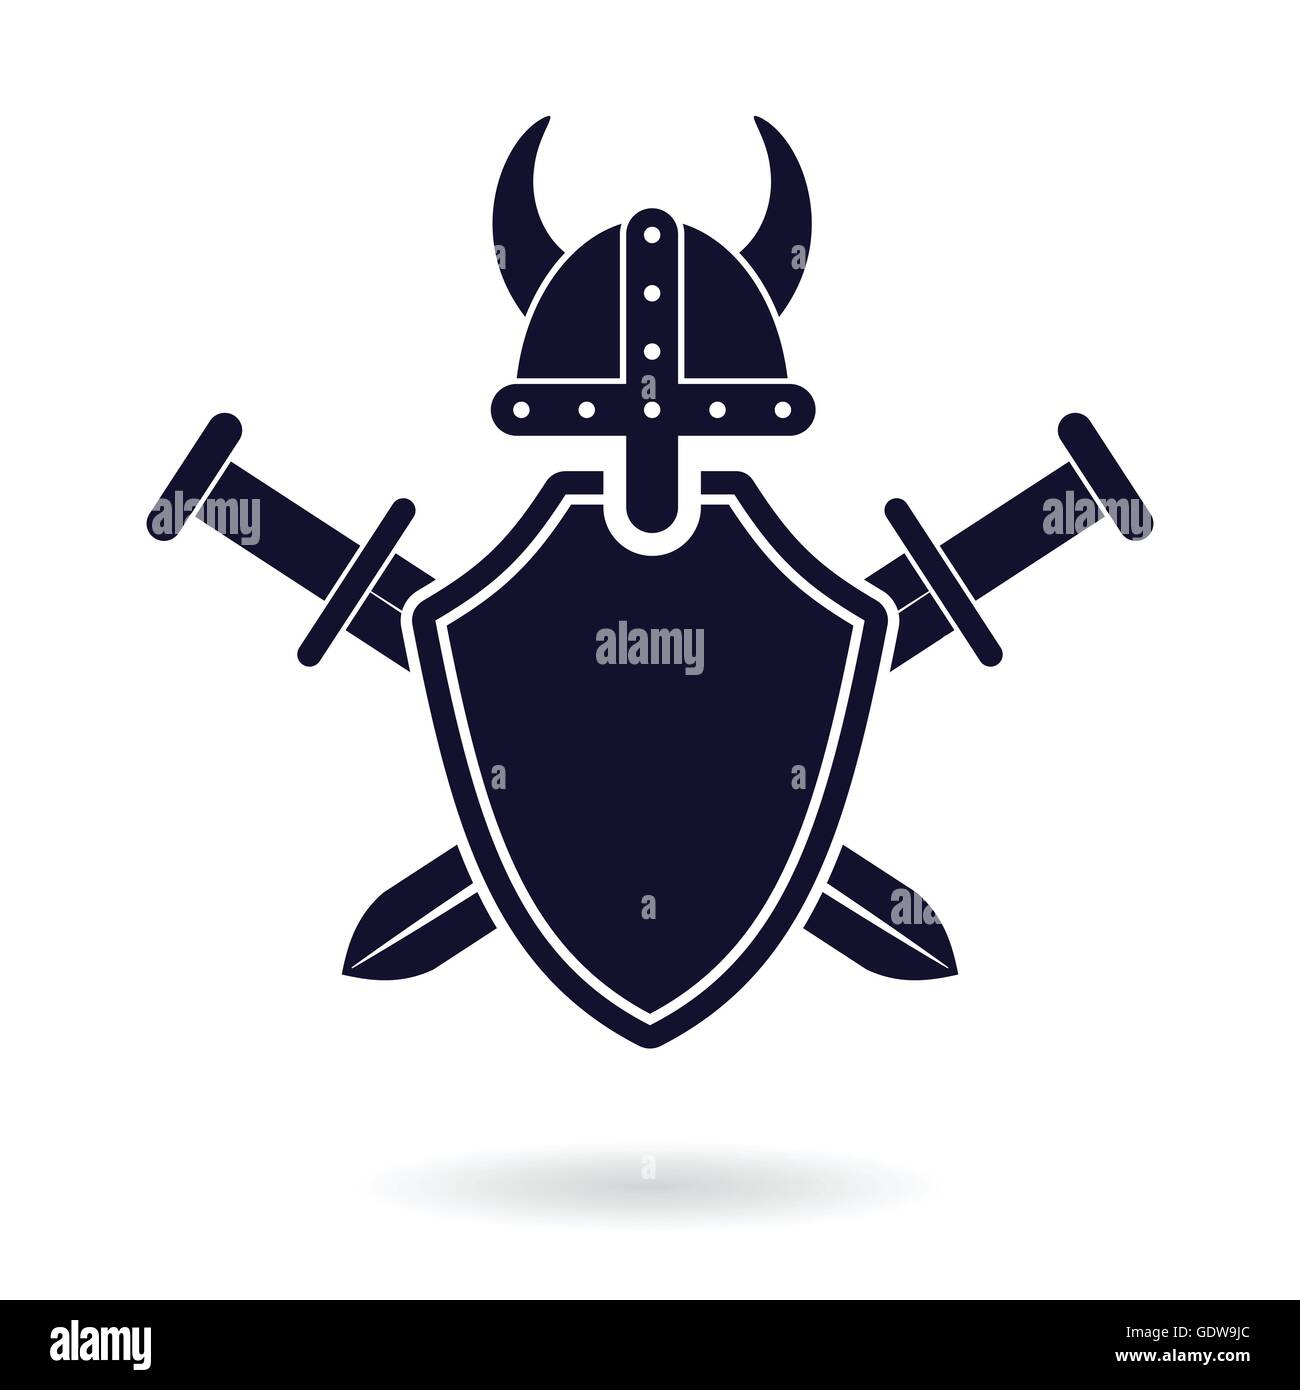 Viking Shield And Crossed Swords Security Protection Logo